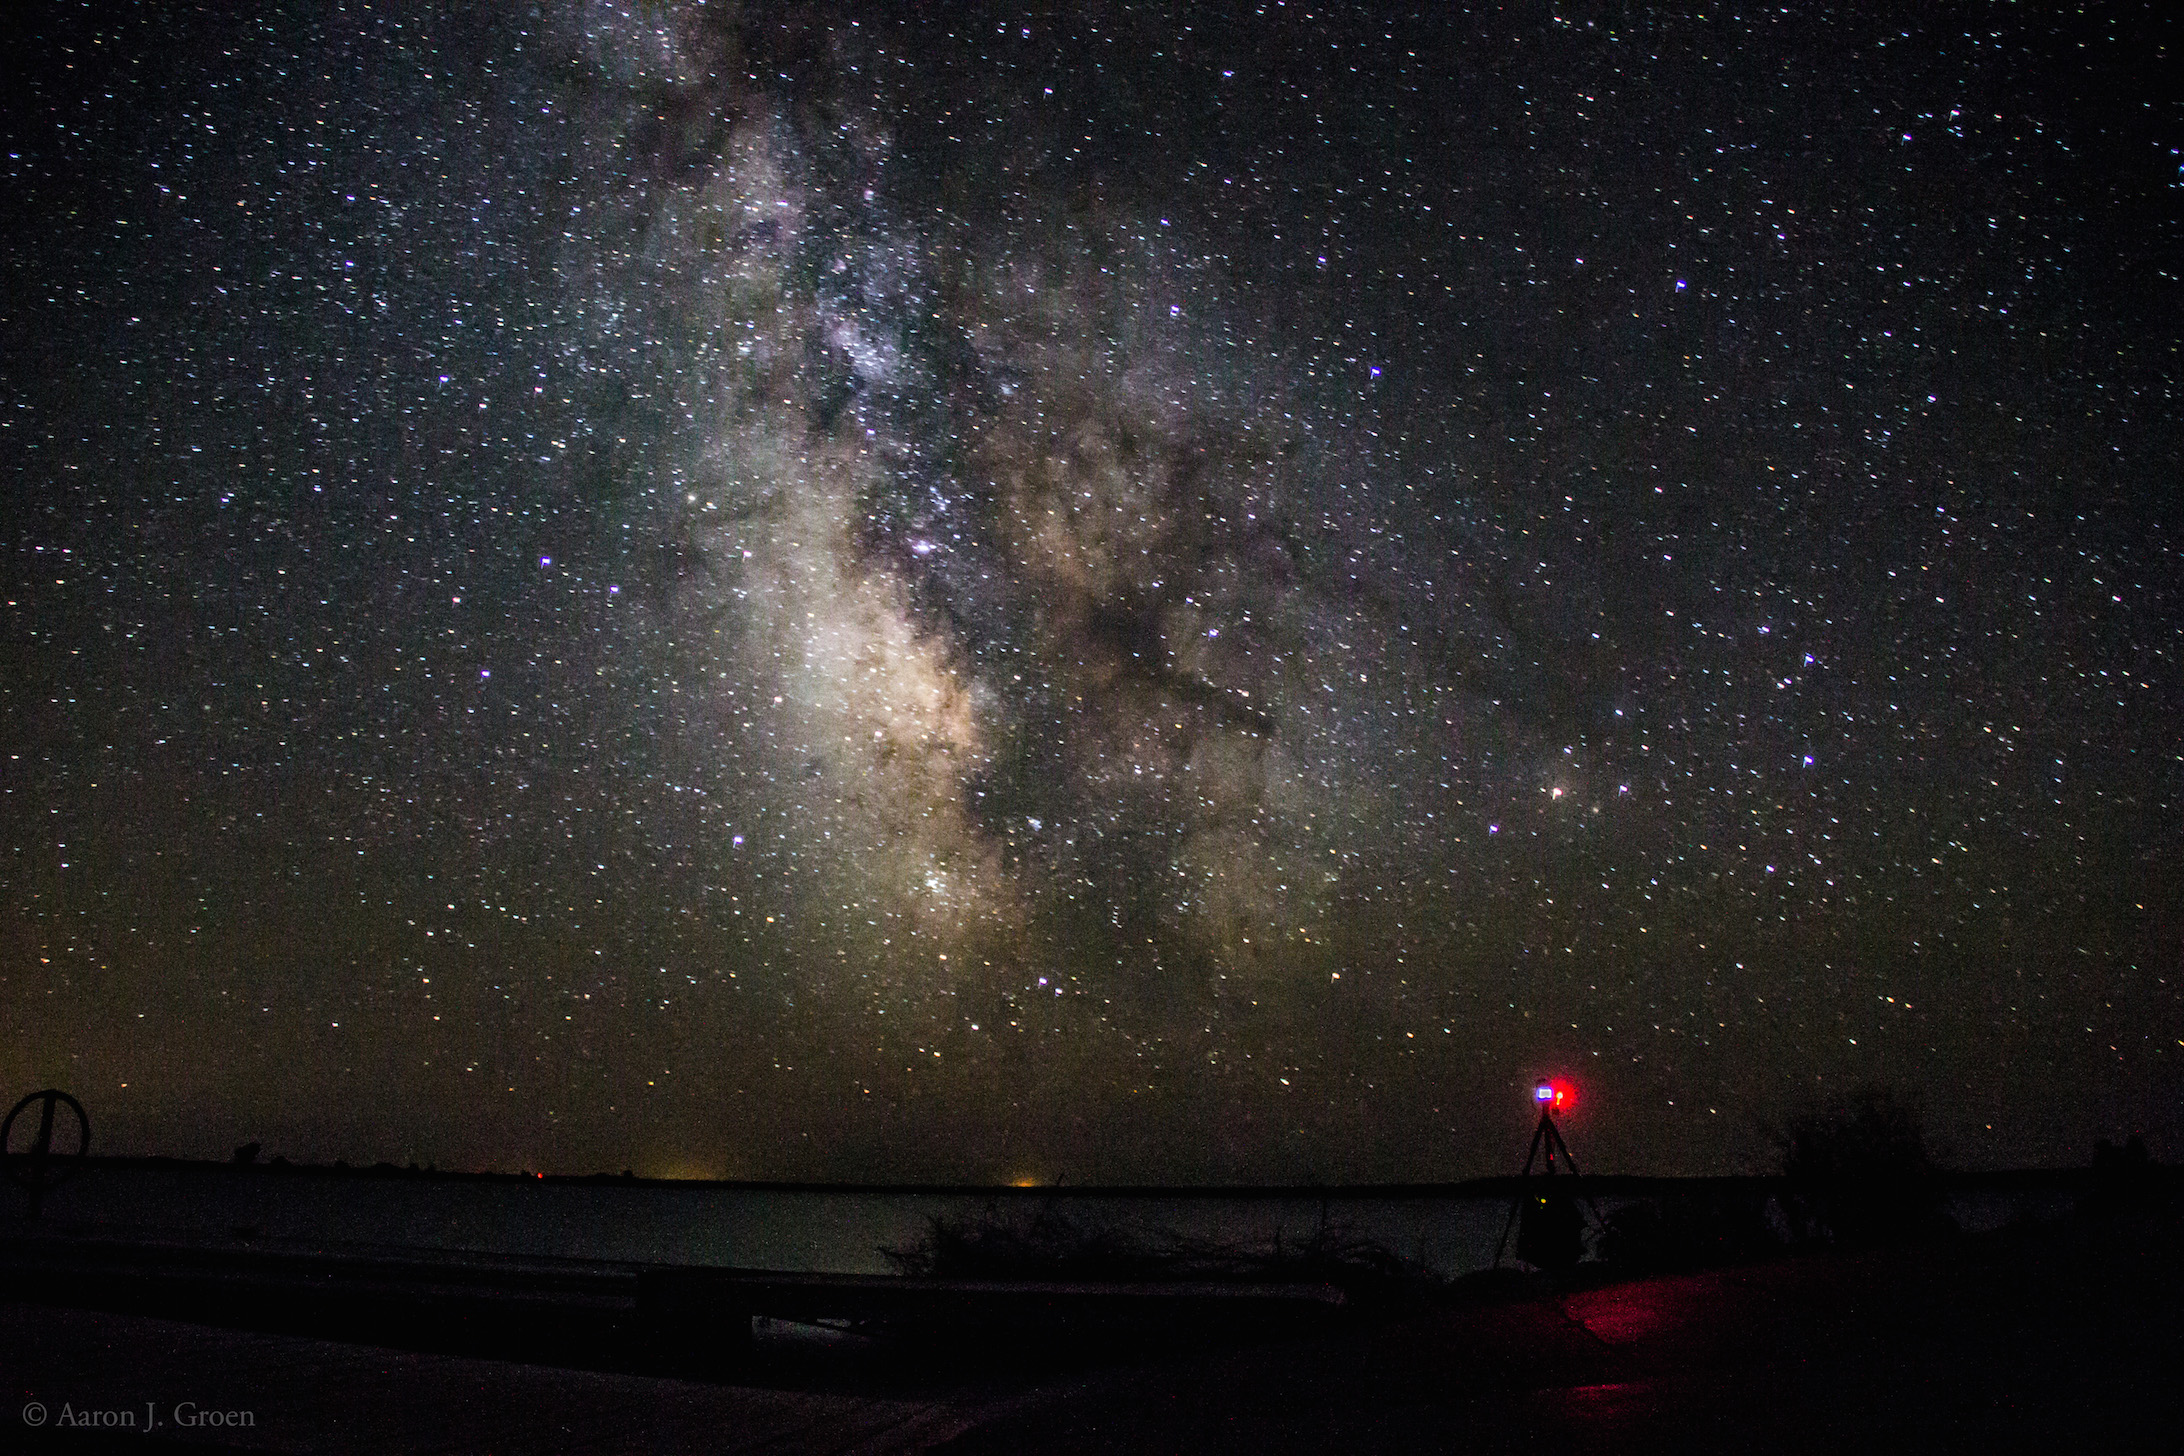 Canon 6D time-lapsing the milky way behind the scenes